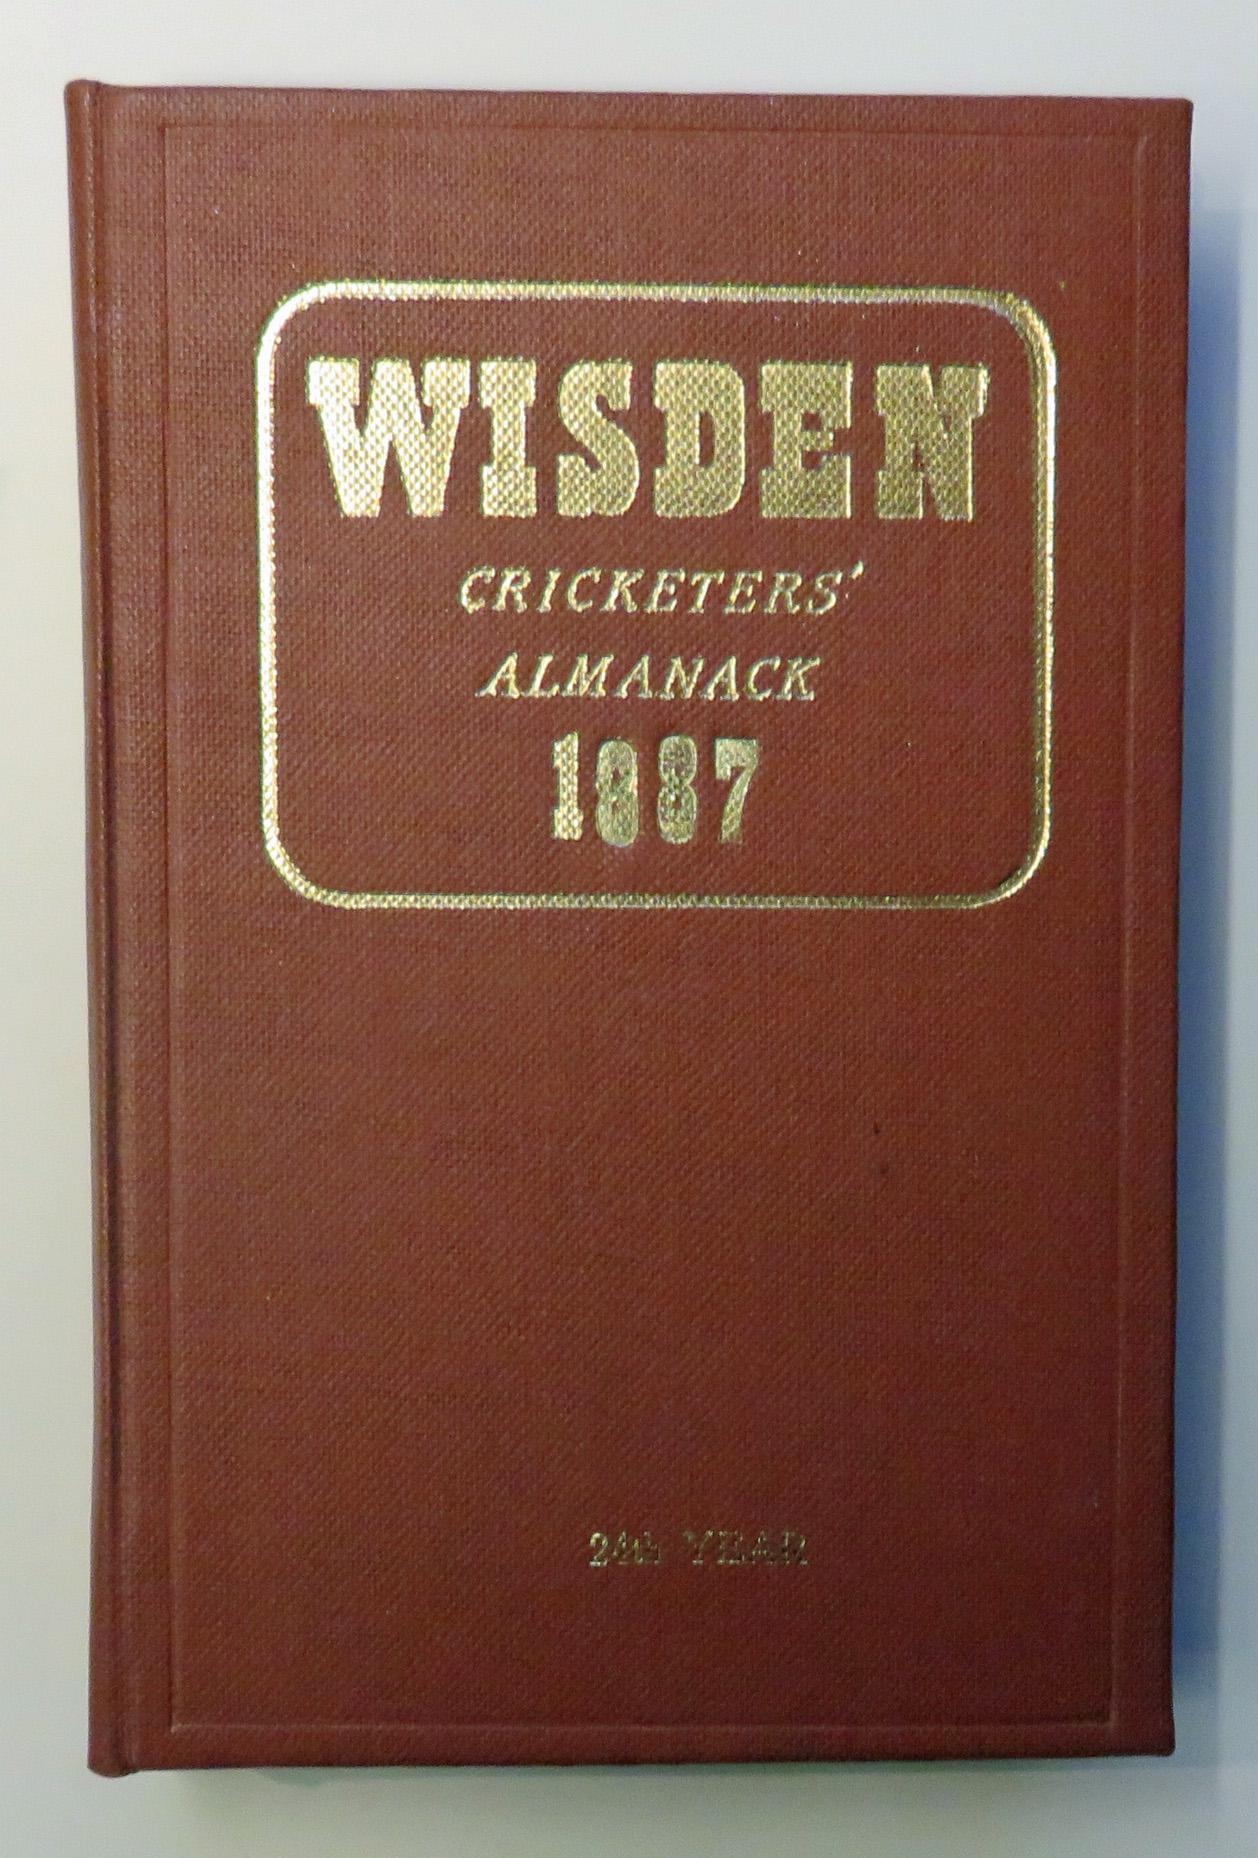 **John Wisden's Cricketers' Almanack For 1887